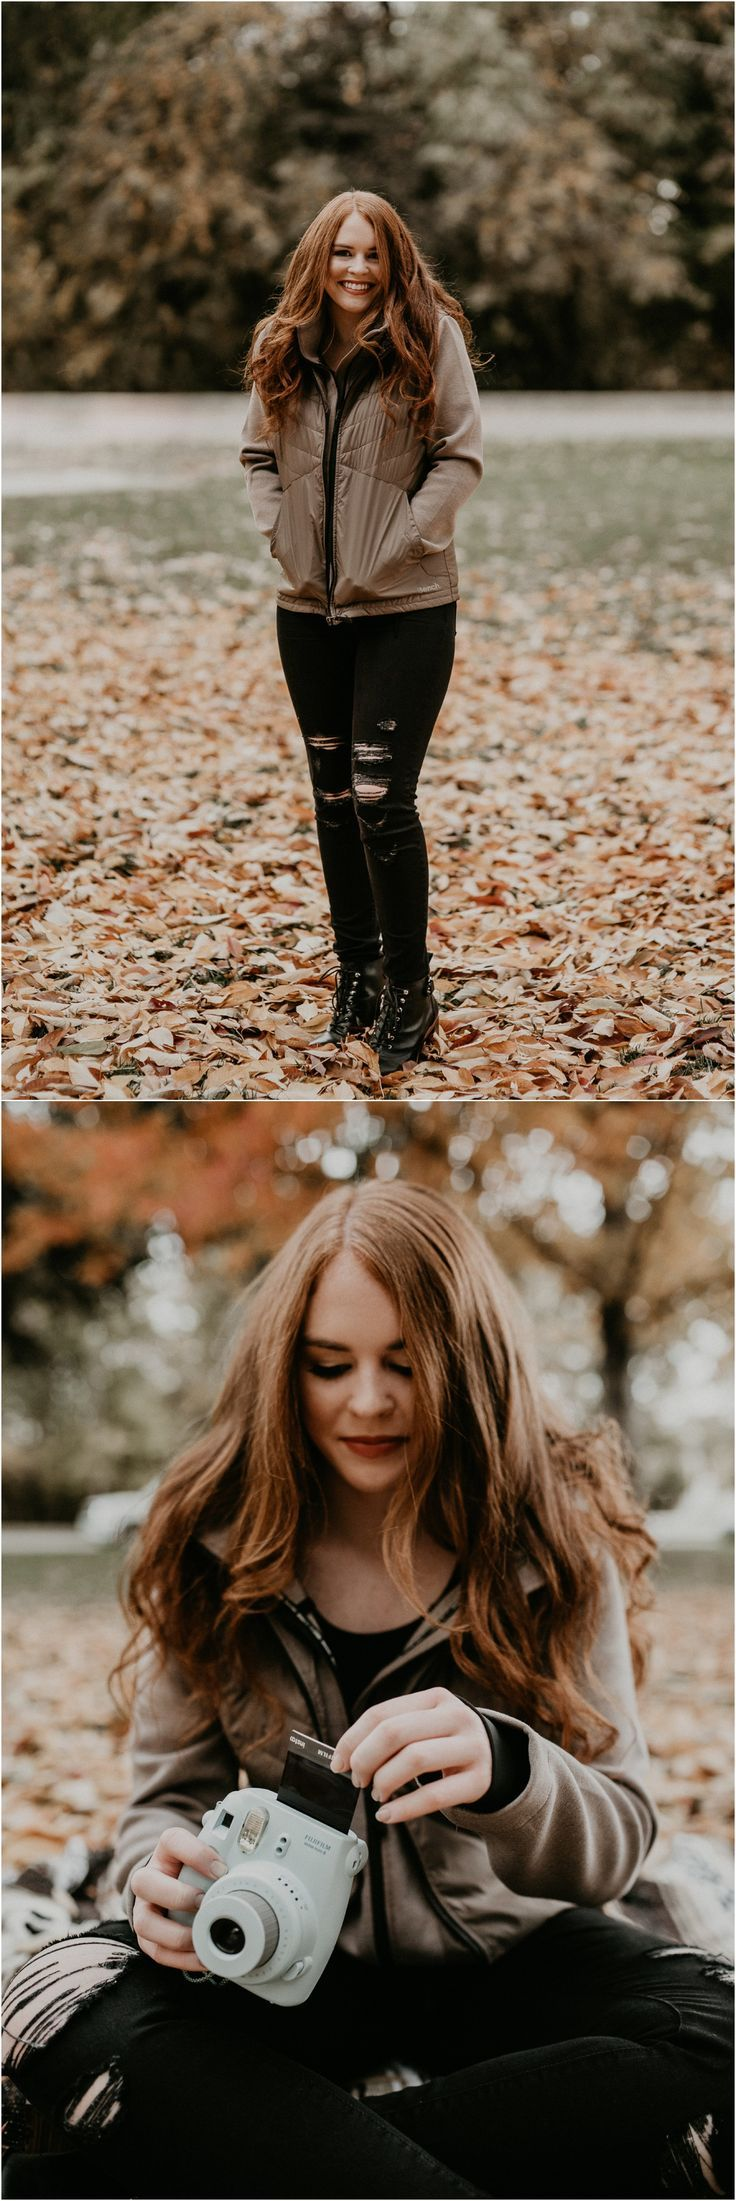 Boise Senior Photographer // Makayla Madden Photography // Eagle High Senior //  Red Head // Fall Senior Pics // Fall Senior Picture Outfit and Location Ideas and Inspiration // Urban Senior Pictures // Polaroids // Polaroid Senior Pictures